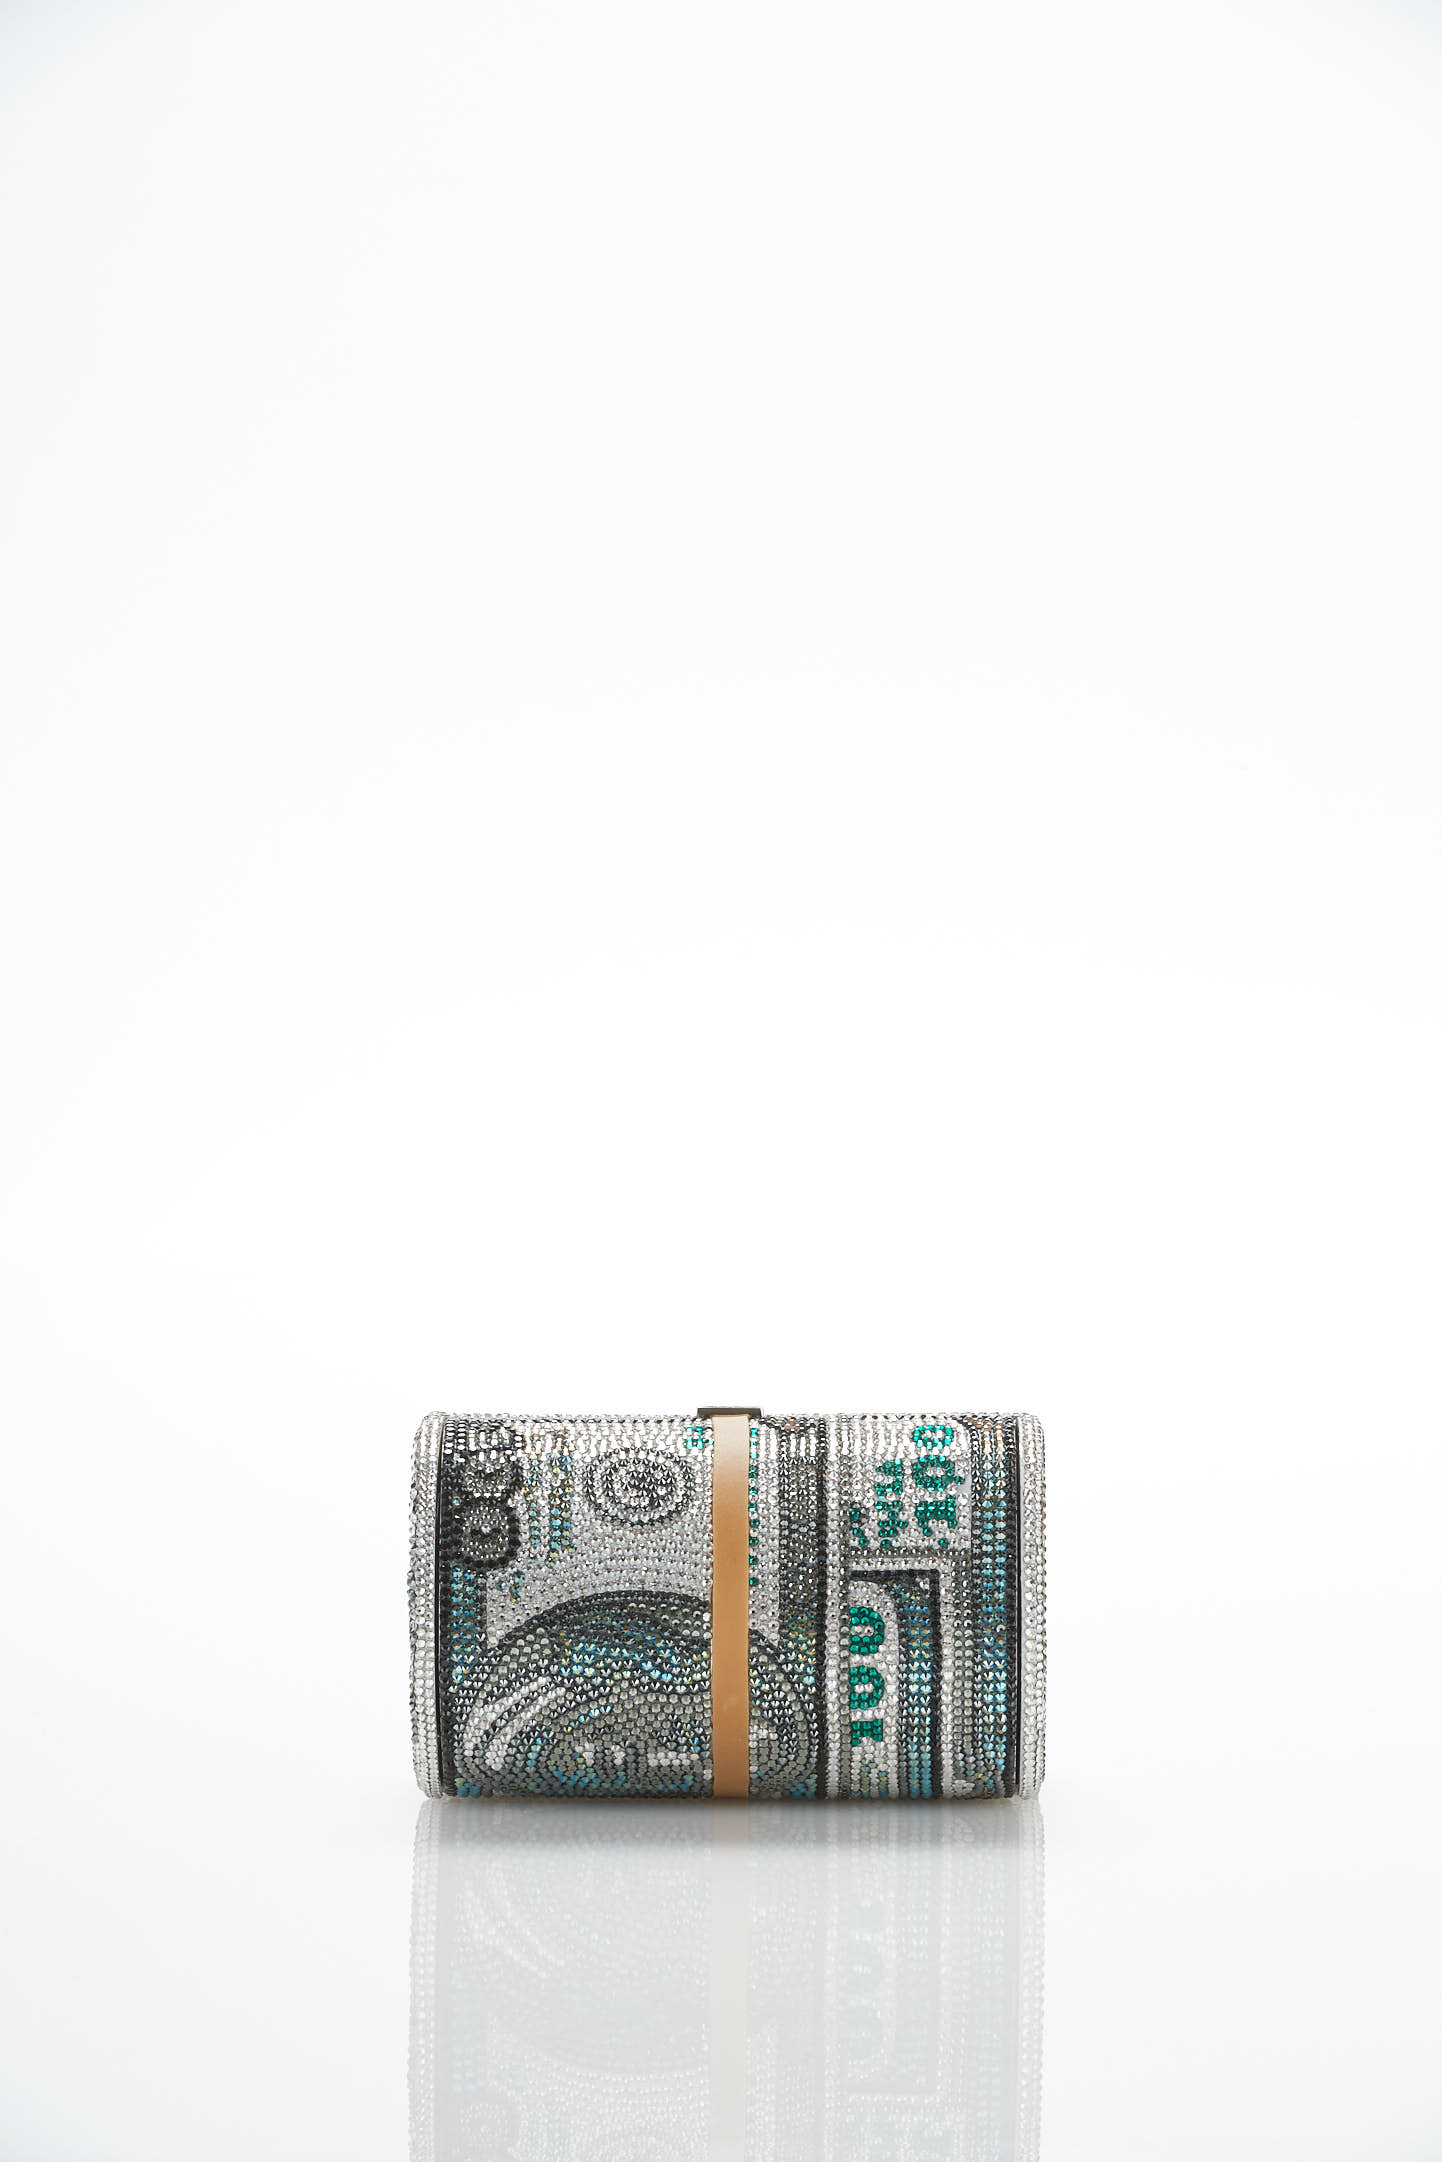 Alexander Wang's limited edition money roll bag by Judith Leiber.